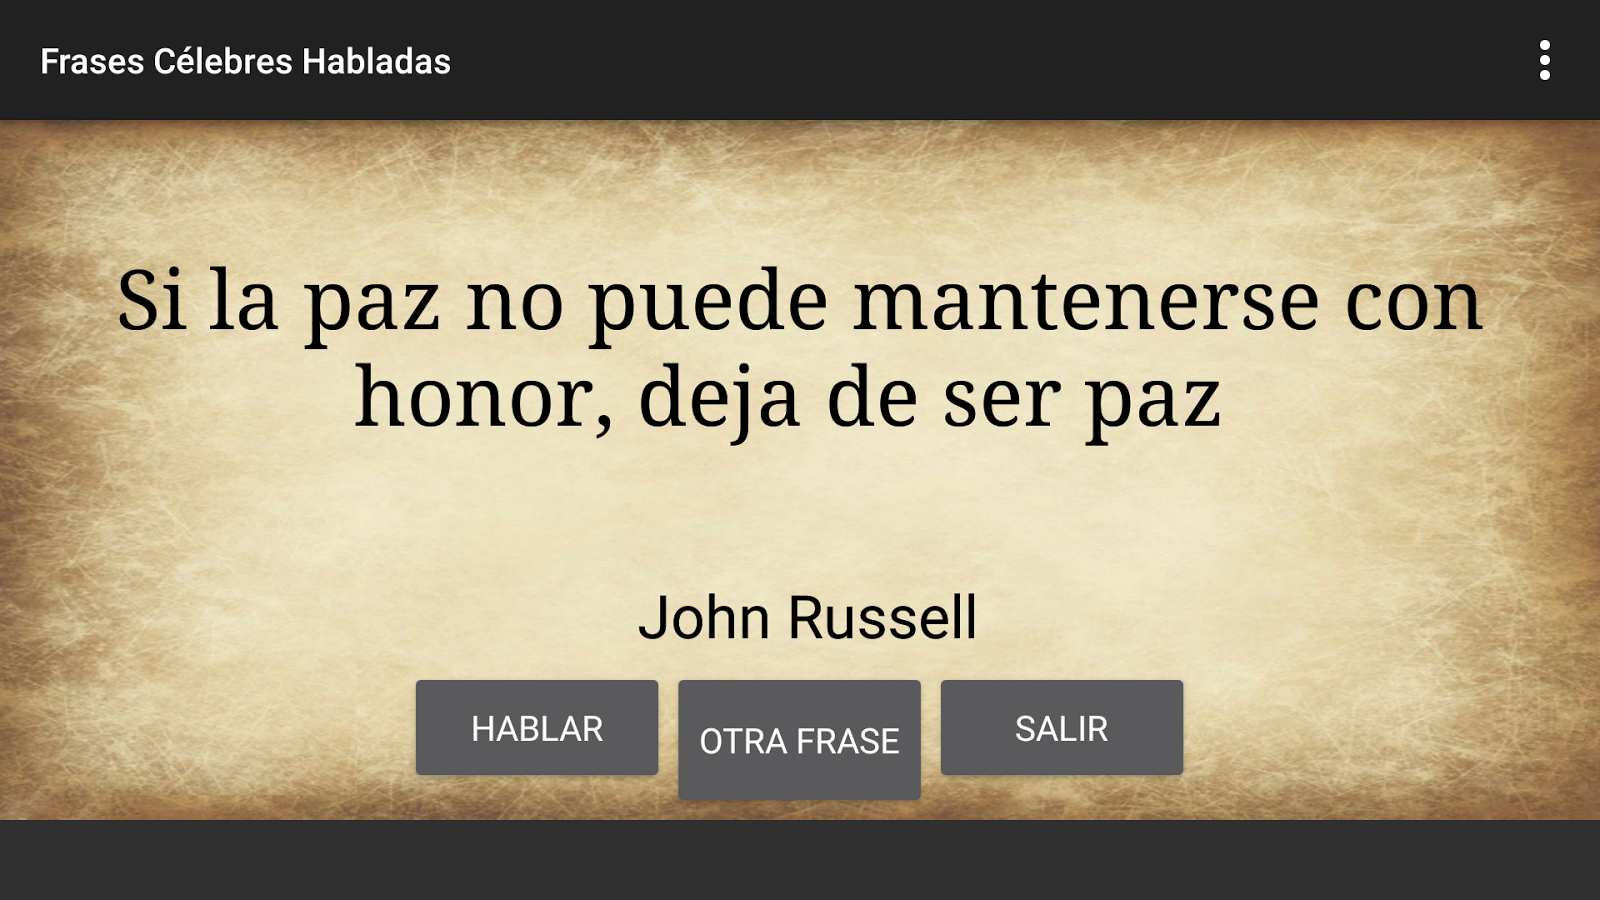 Frases Y Citas Célebres: Android Apps On Google Play